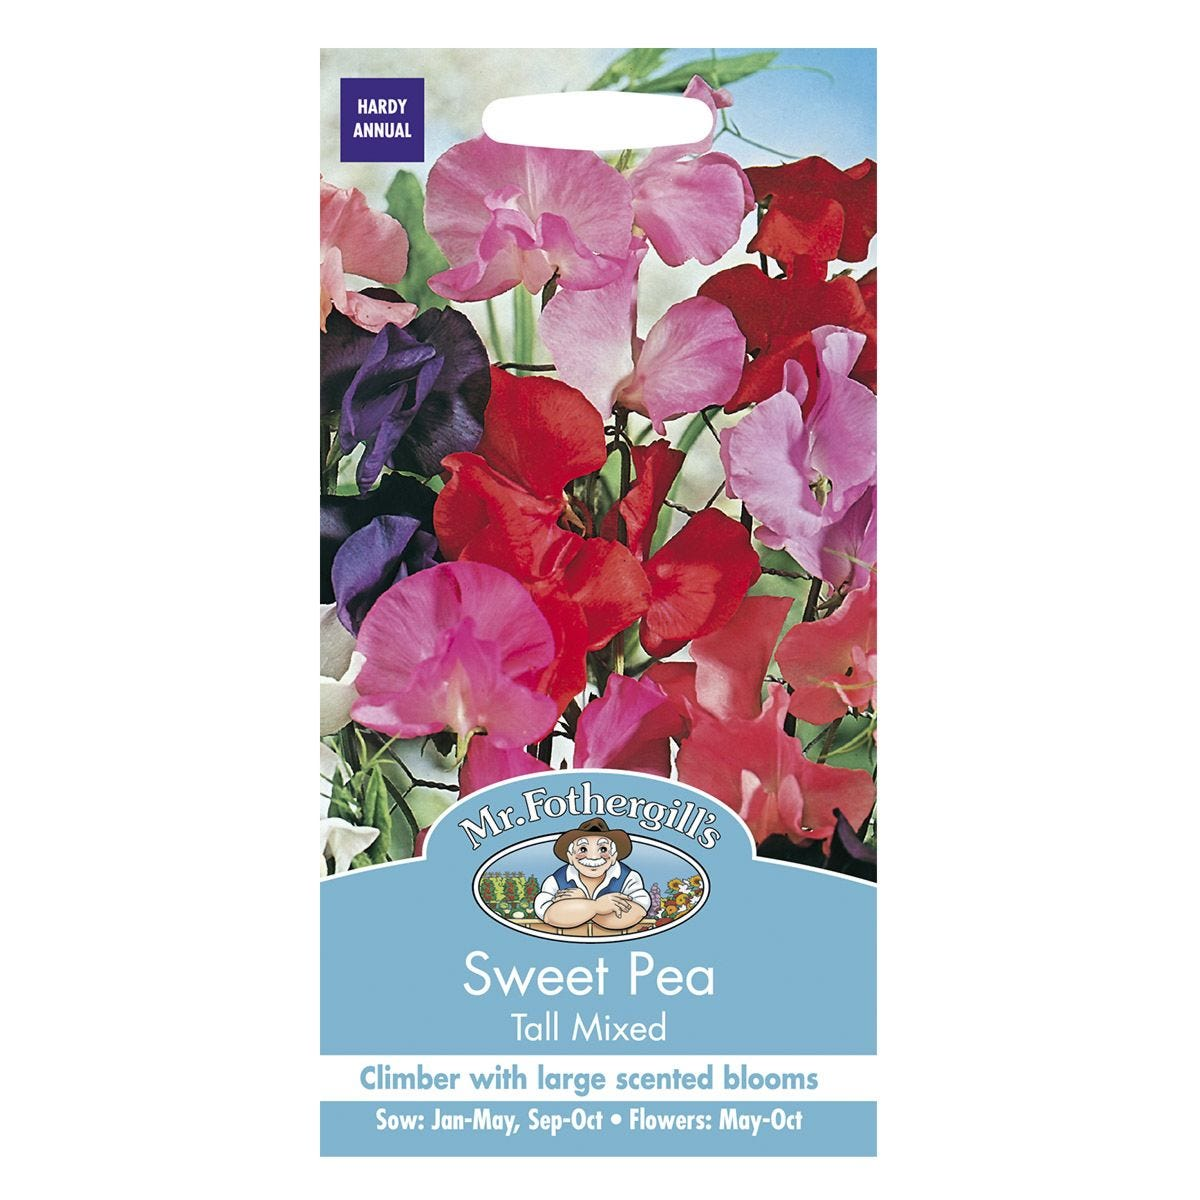 Mr Fothergill's Sweet Pea Tall Mixed Seeds